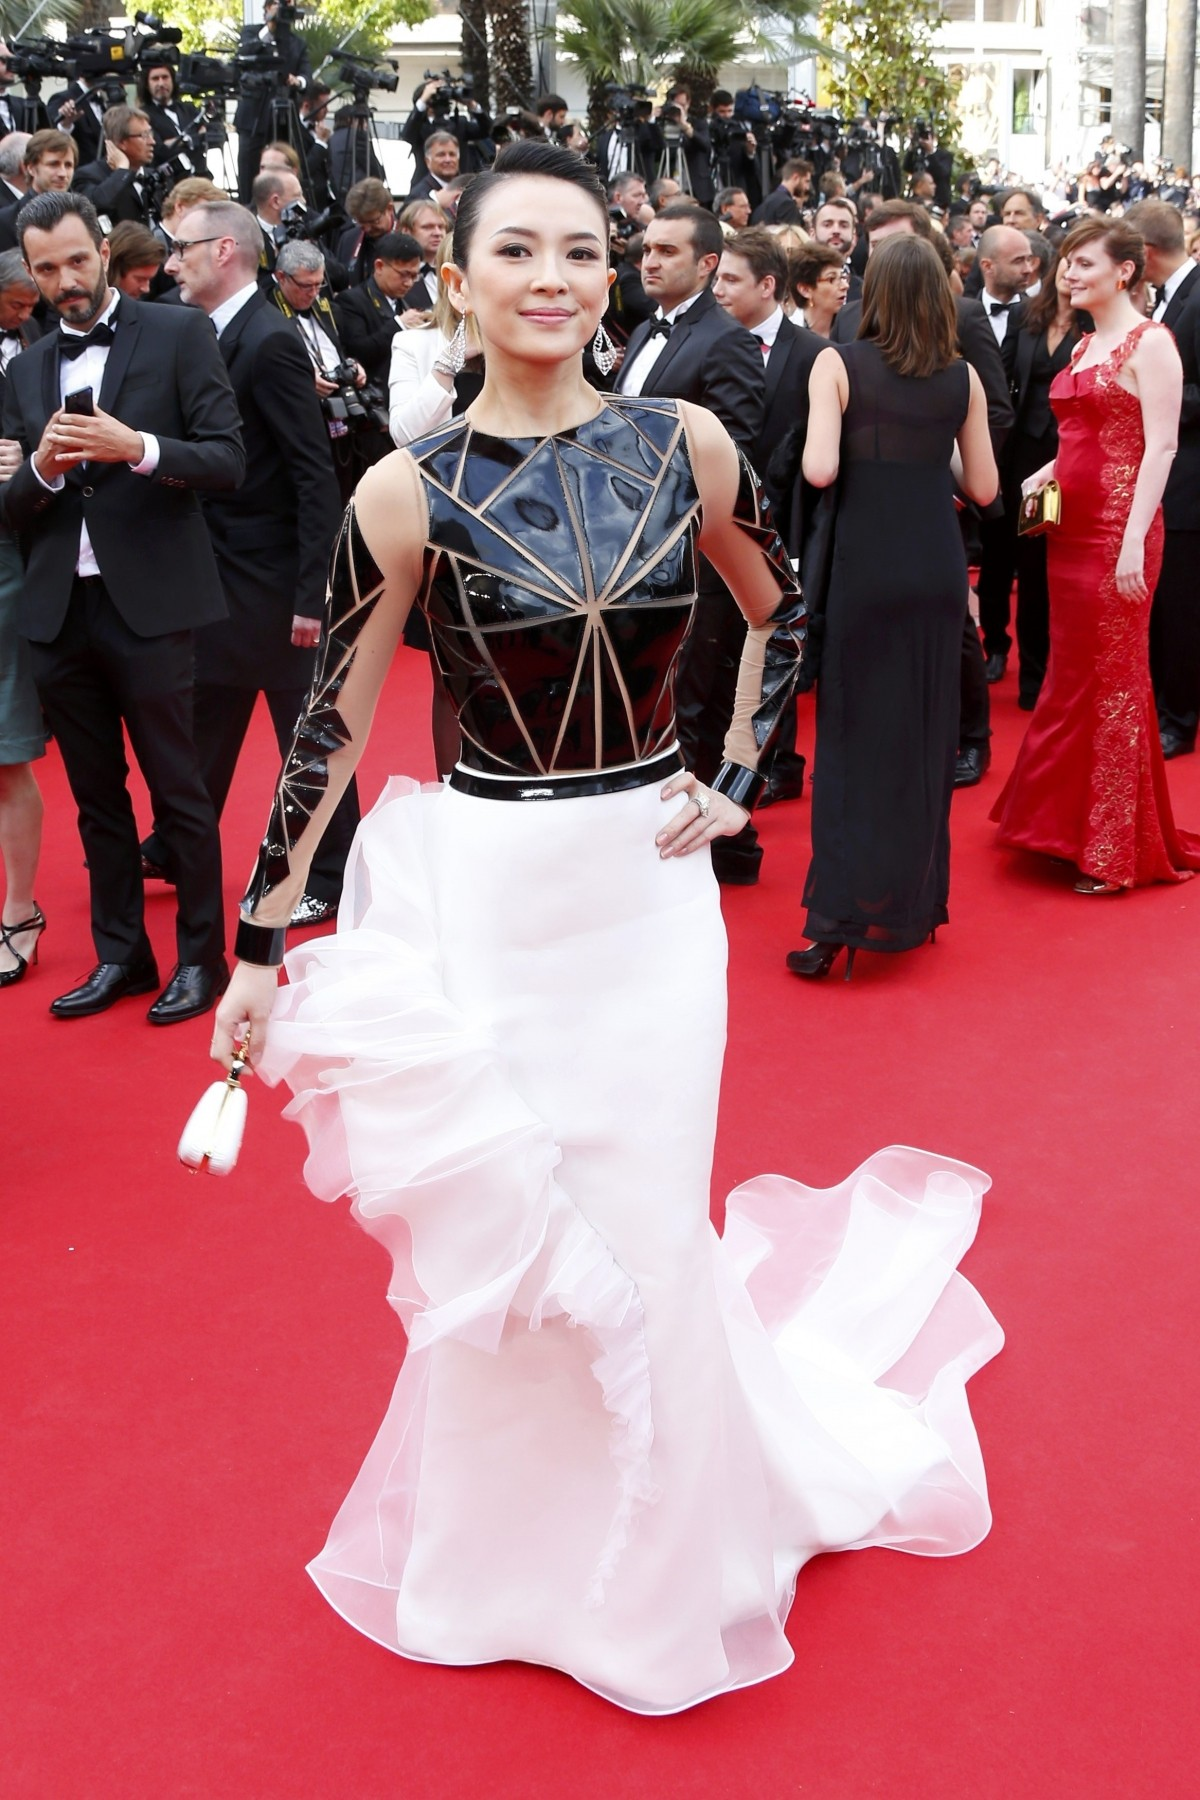 Actress Zhang Ziyi poses on the red carpet as she arrives for the opening ceremony of the 67th Cannes Film Festival in Cannes